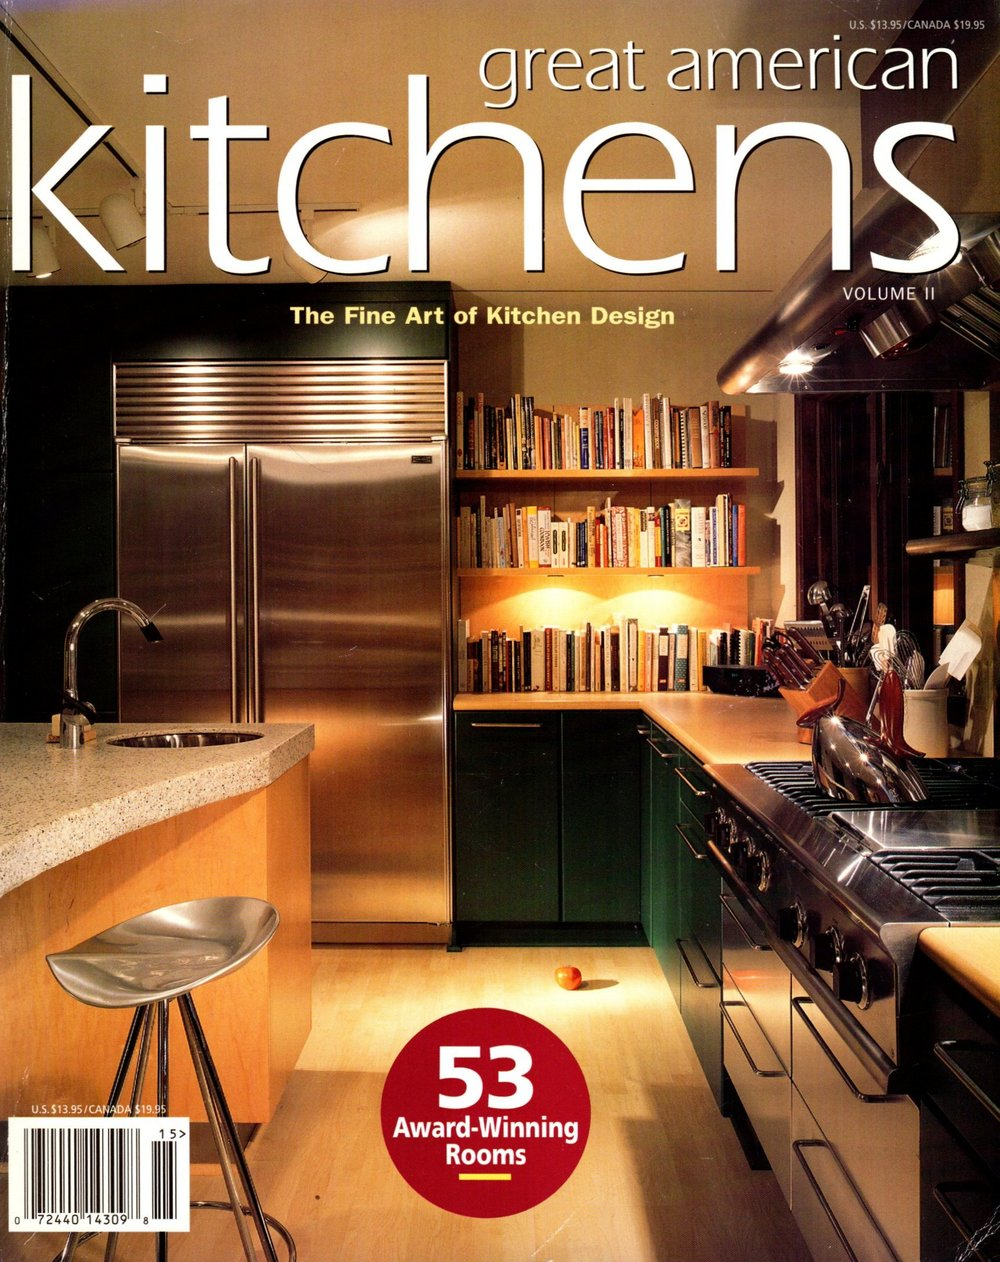 Great American Kitchens Volume II, 2001